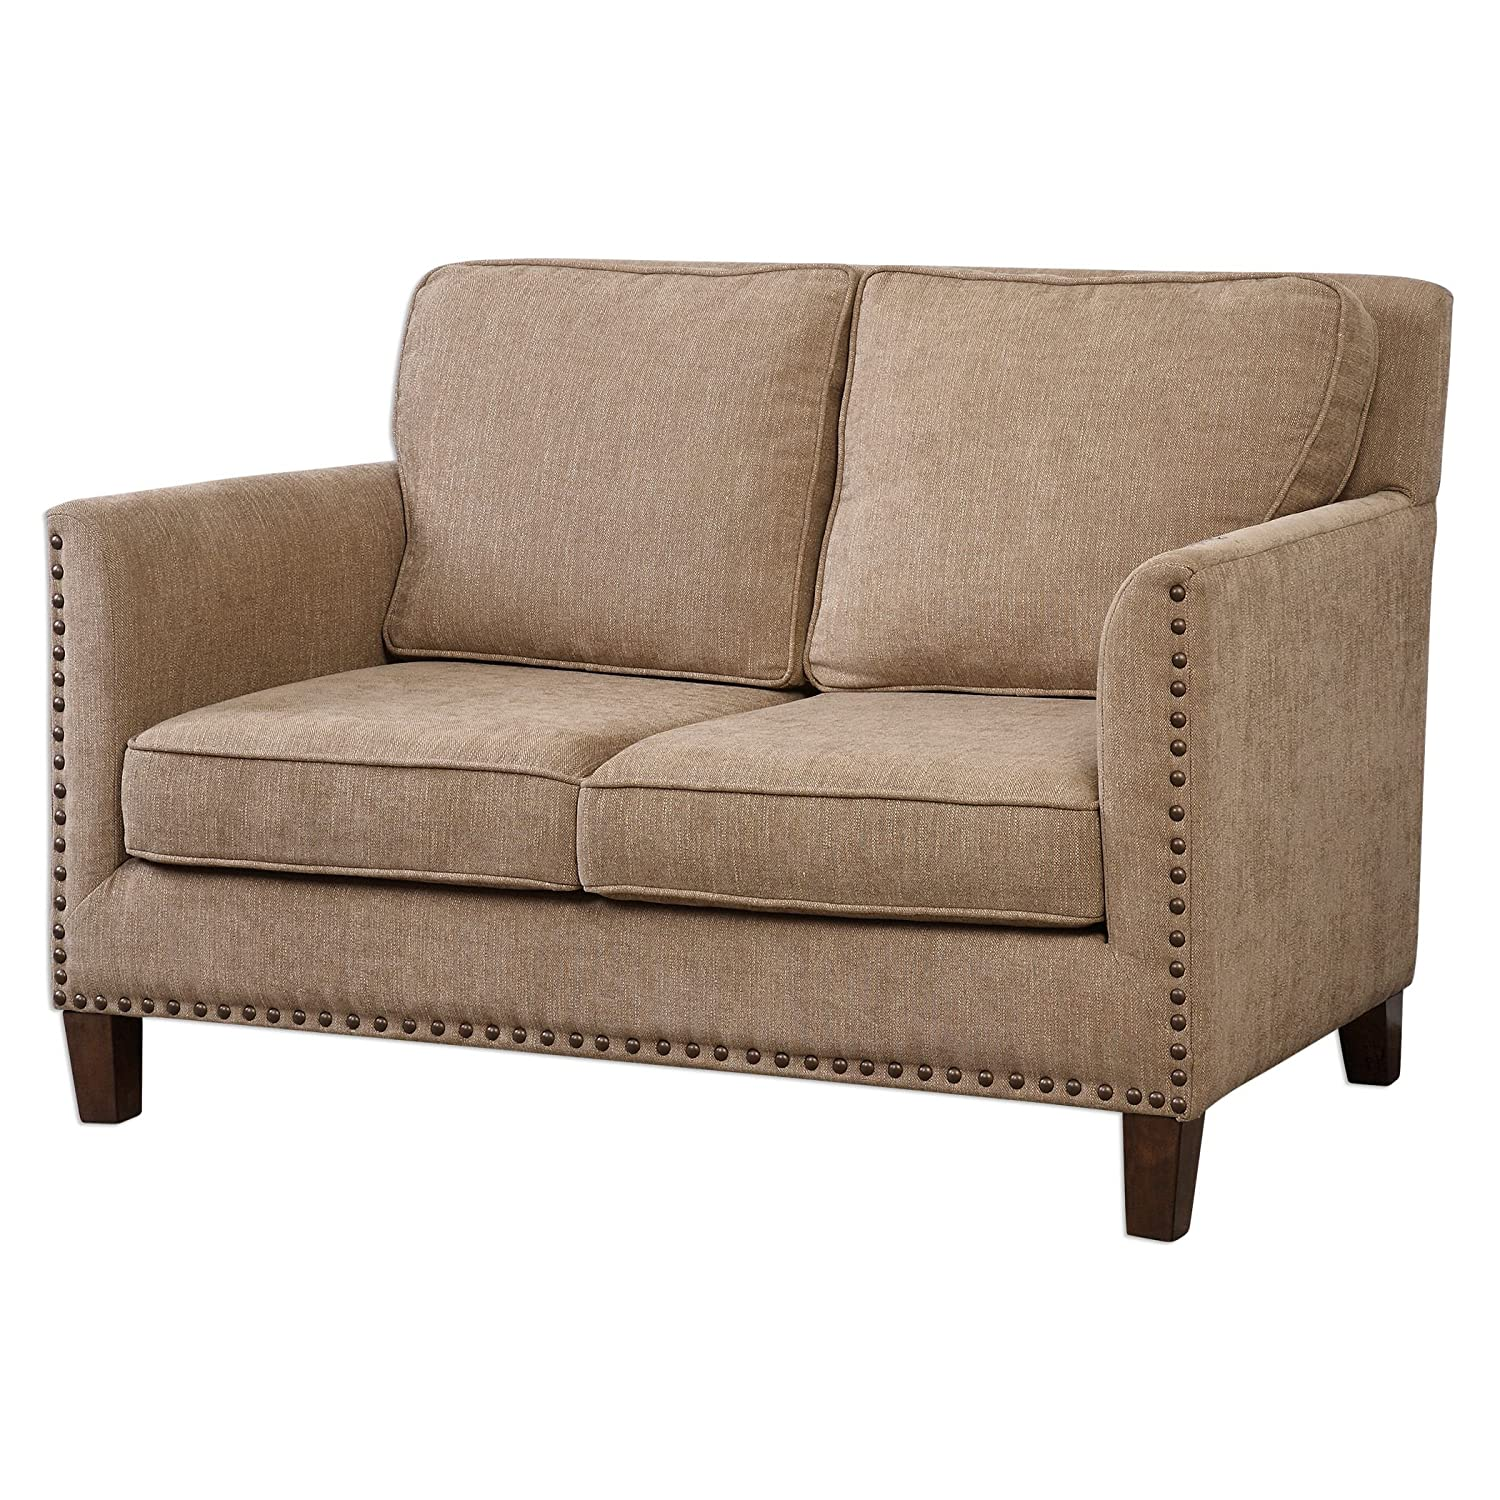 Classic Comfortable Tan Brown Cushioned Loveseat | Neutral Box Square Sofa